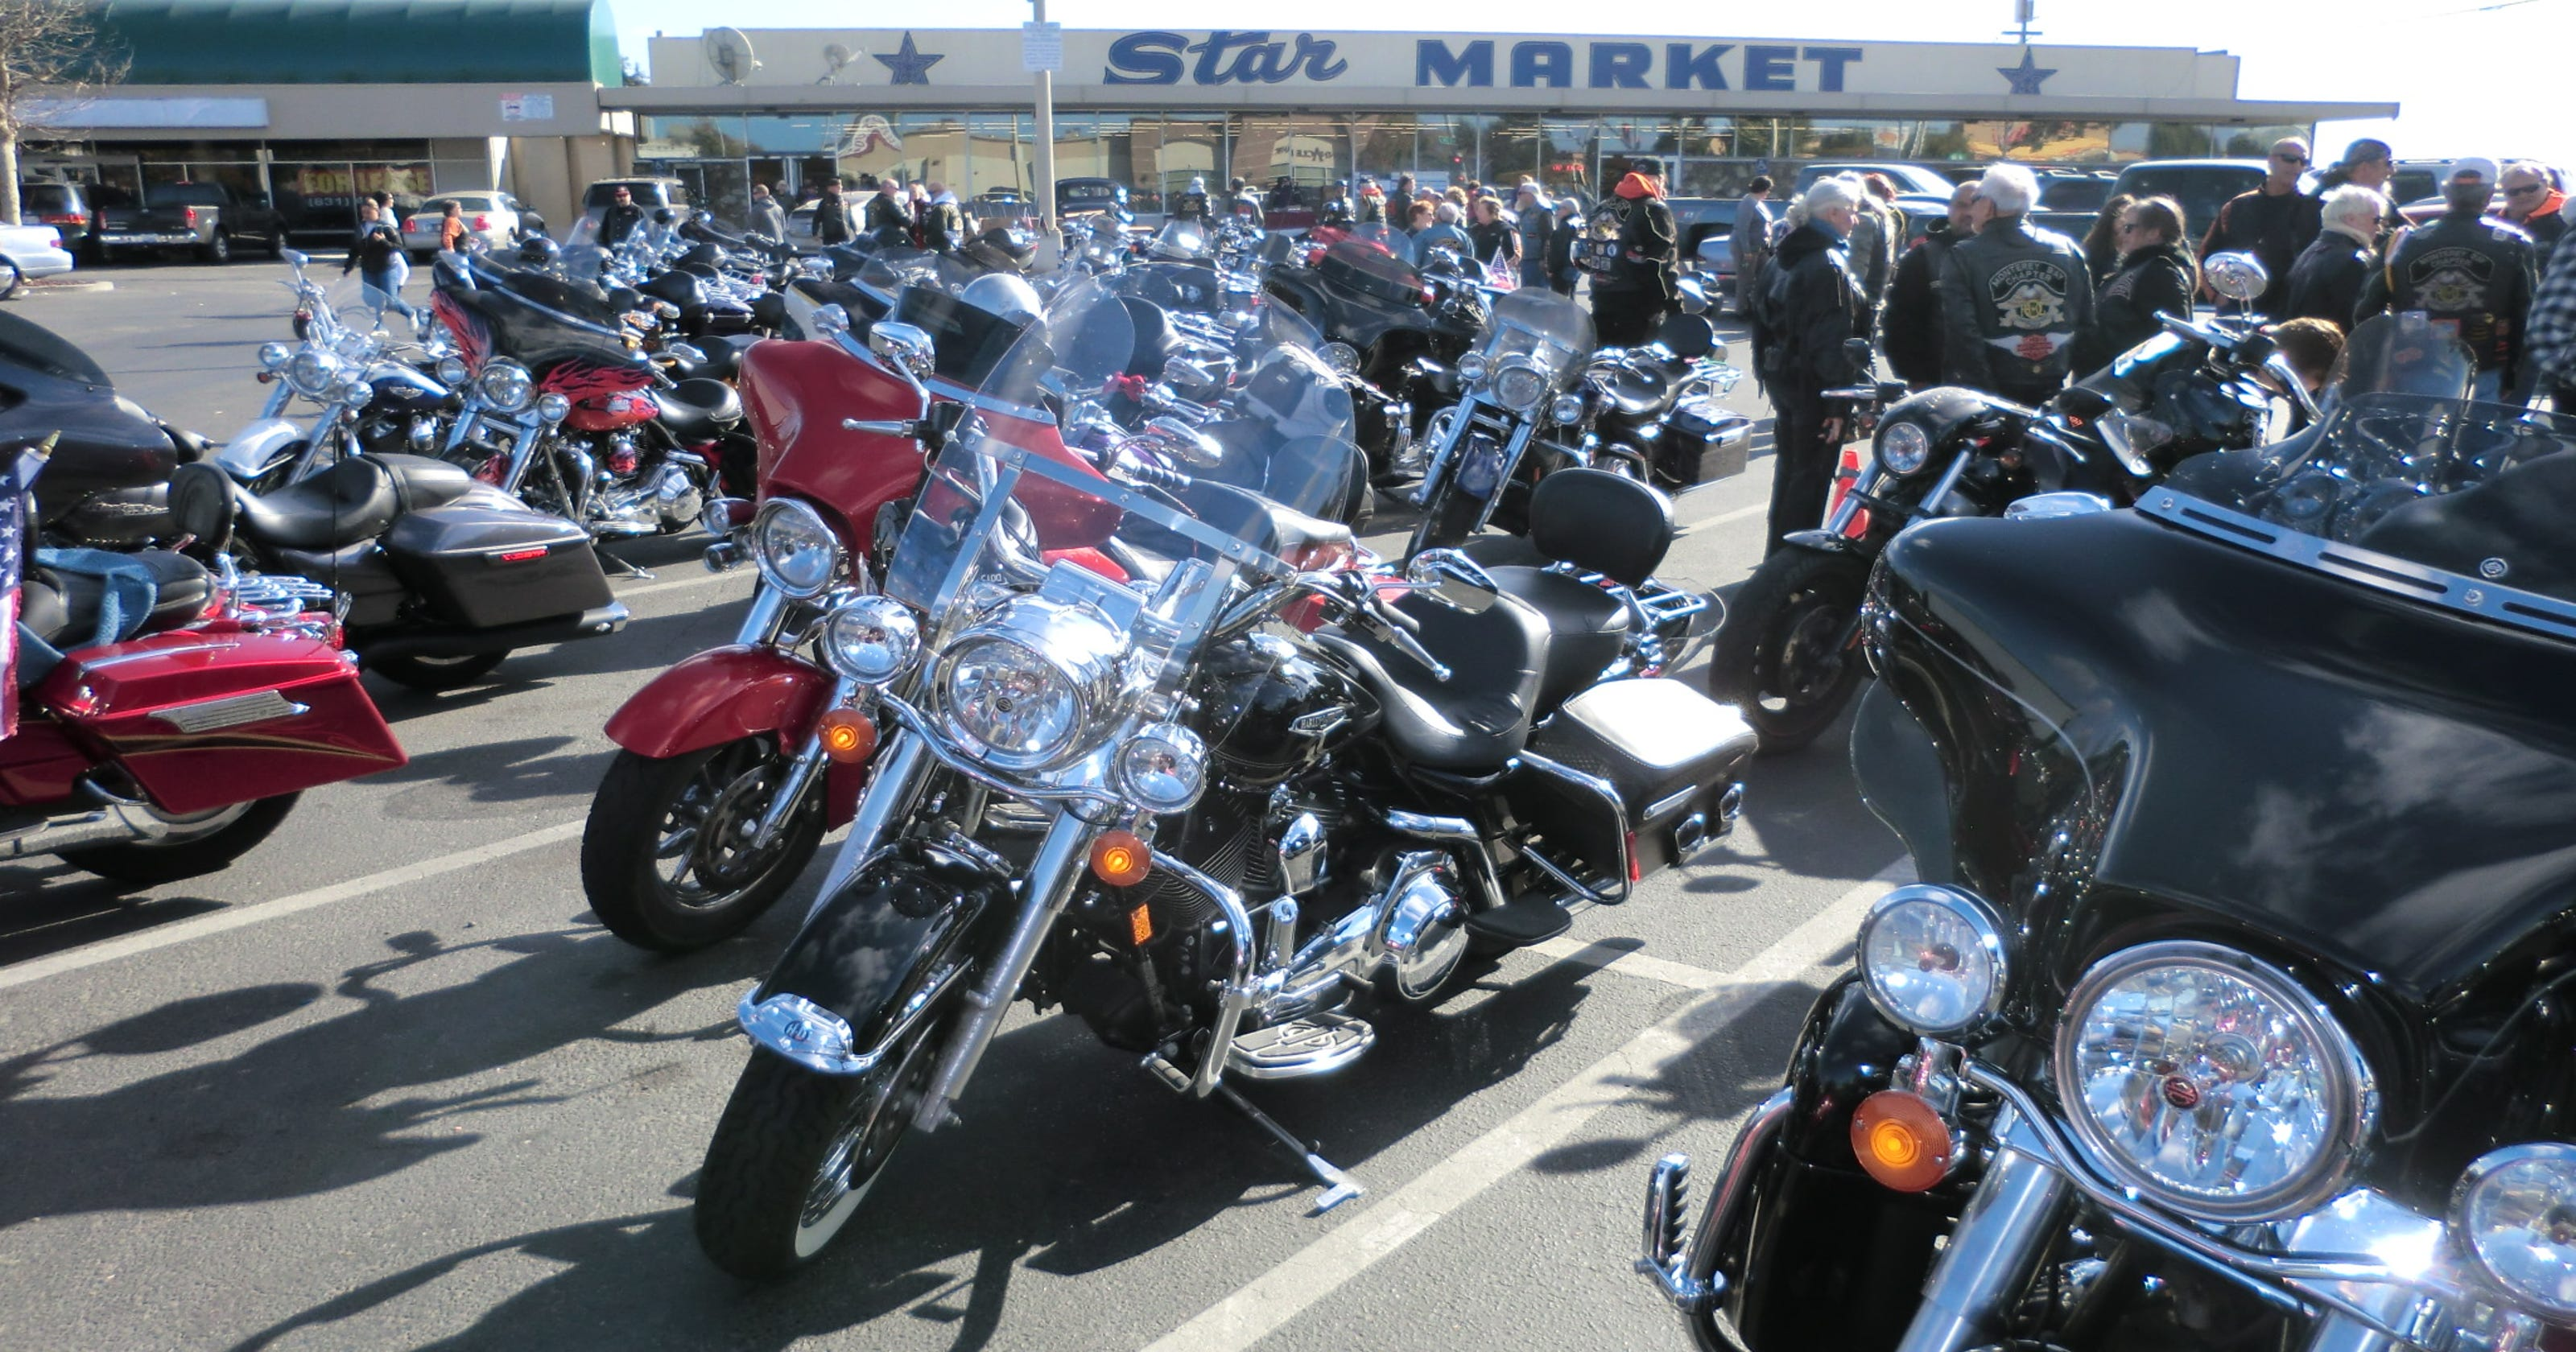 Outlaw motorcycle club to hold meeting in Palm Springs this